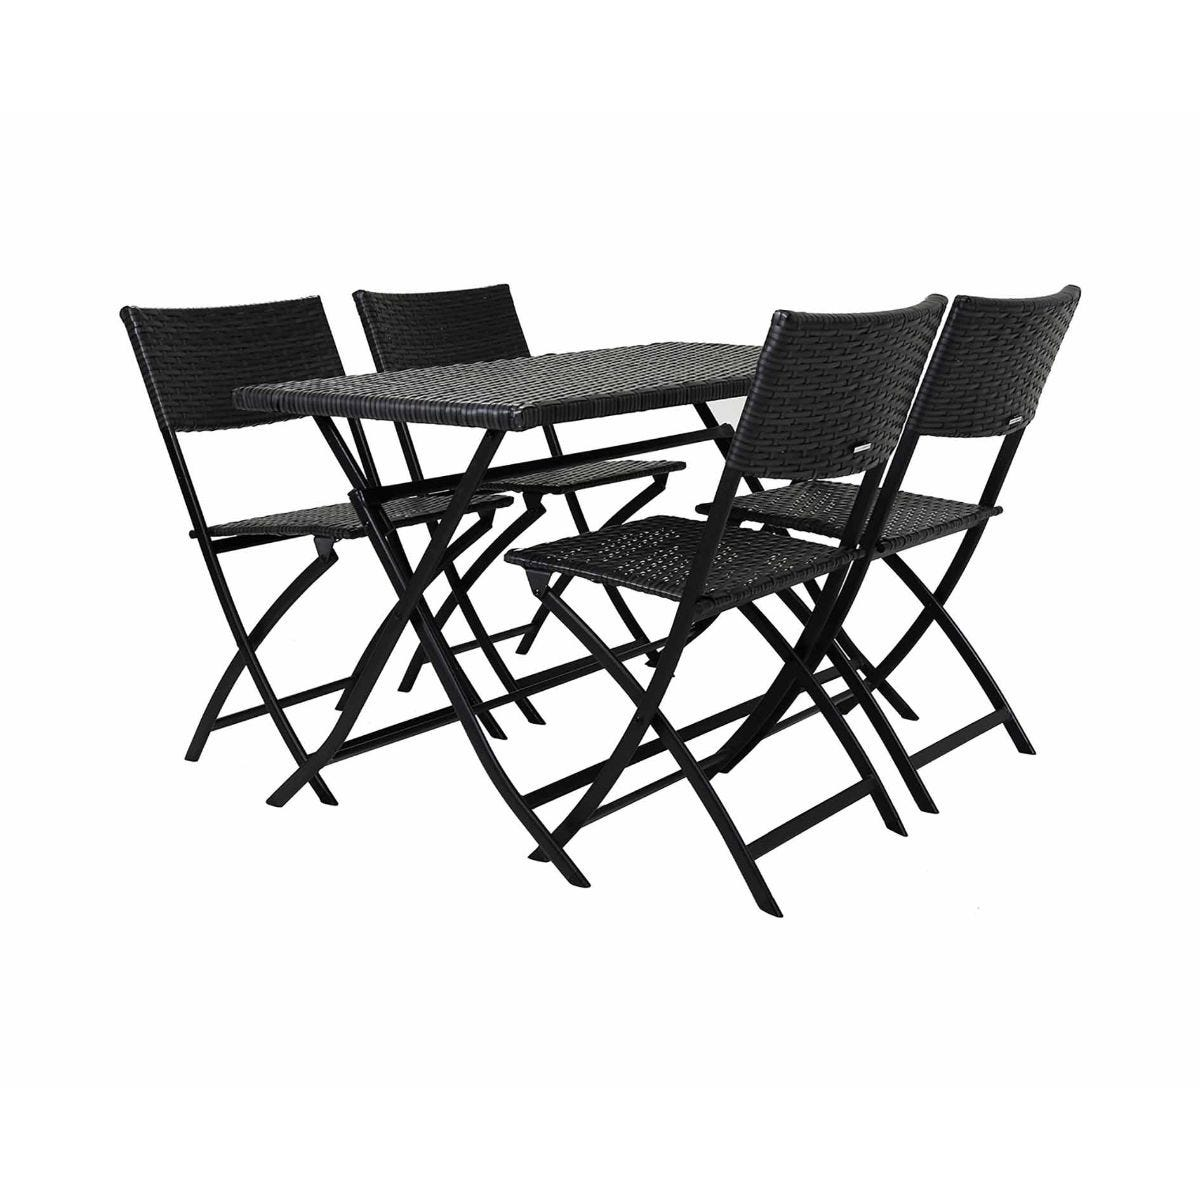 Charles Bentley Amalfi 4 Seater Rattan Garden Dining Set, Grey